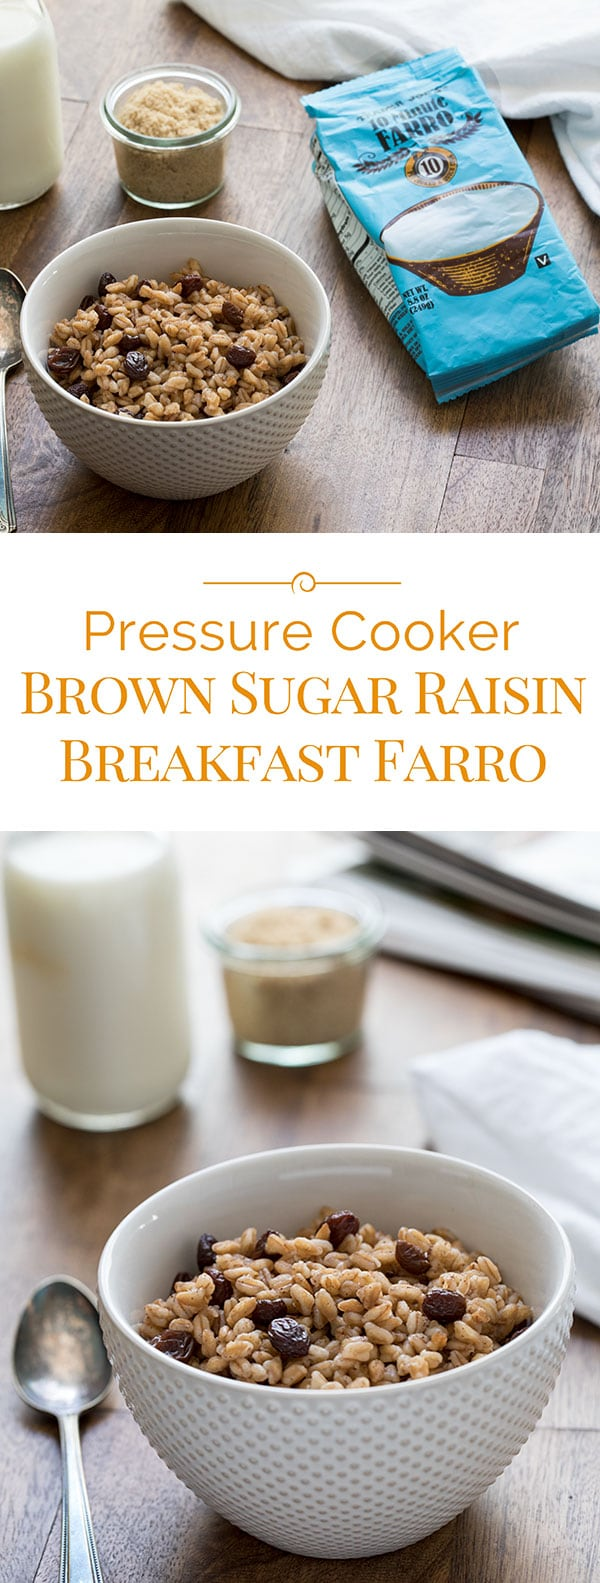 Quick and easy to make this Pressure Cooker Brown Sugar Raisin Breakfast Farro and it will keep you satisfied all morning long.